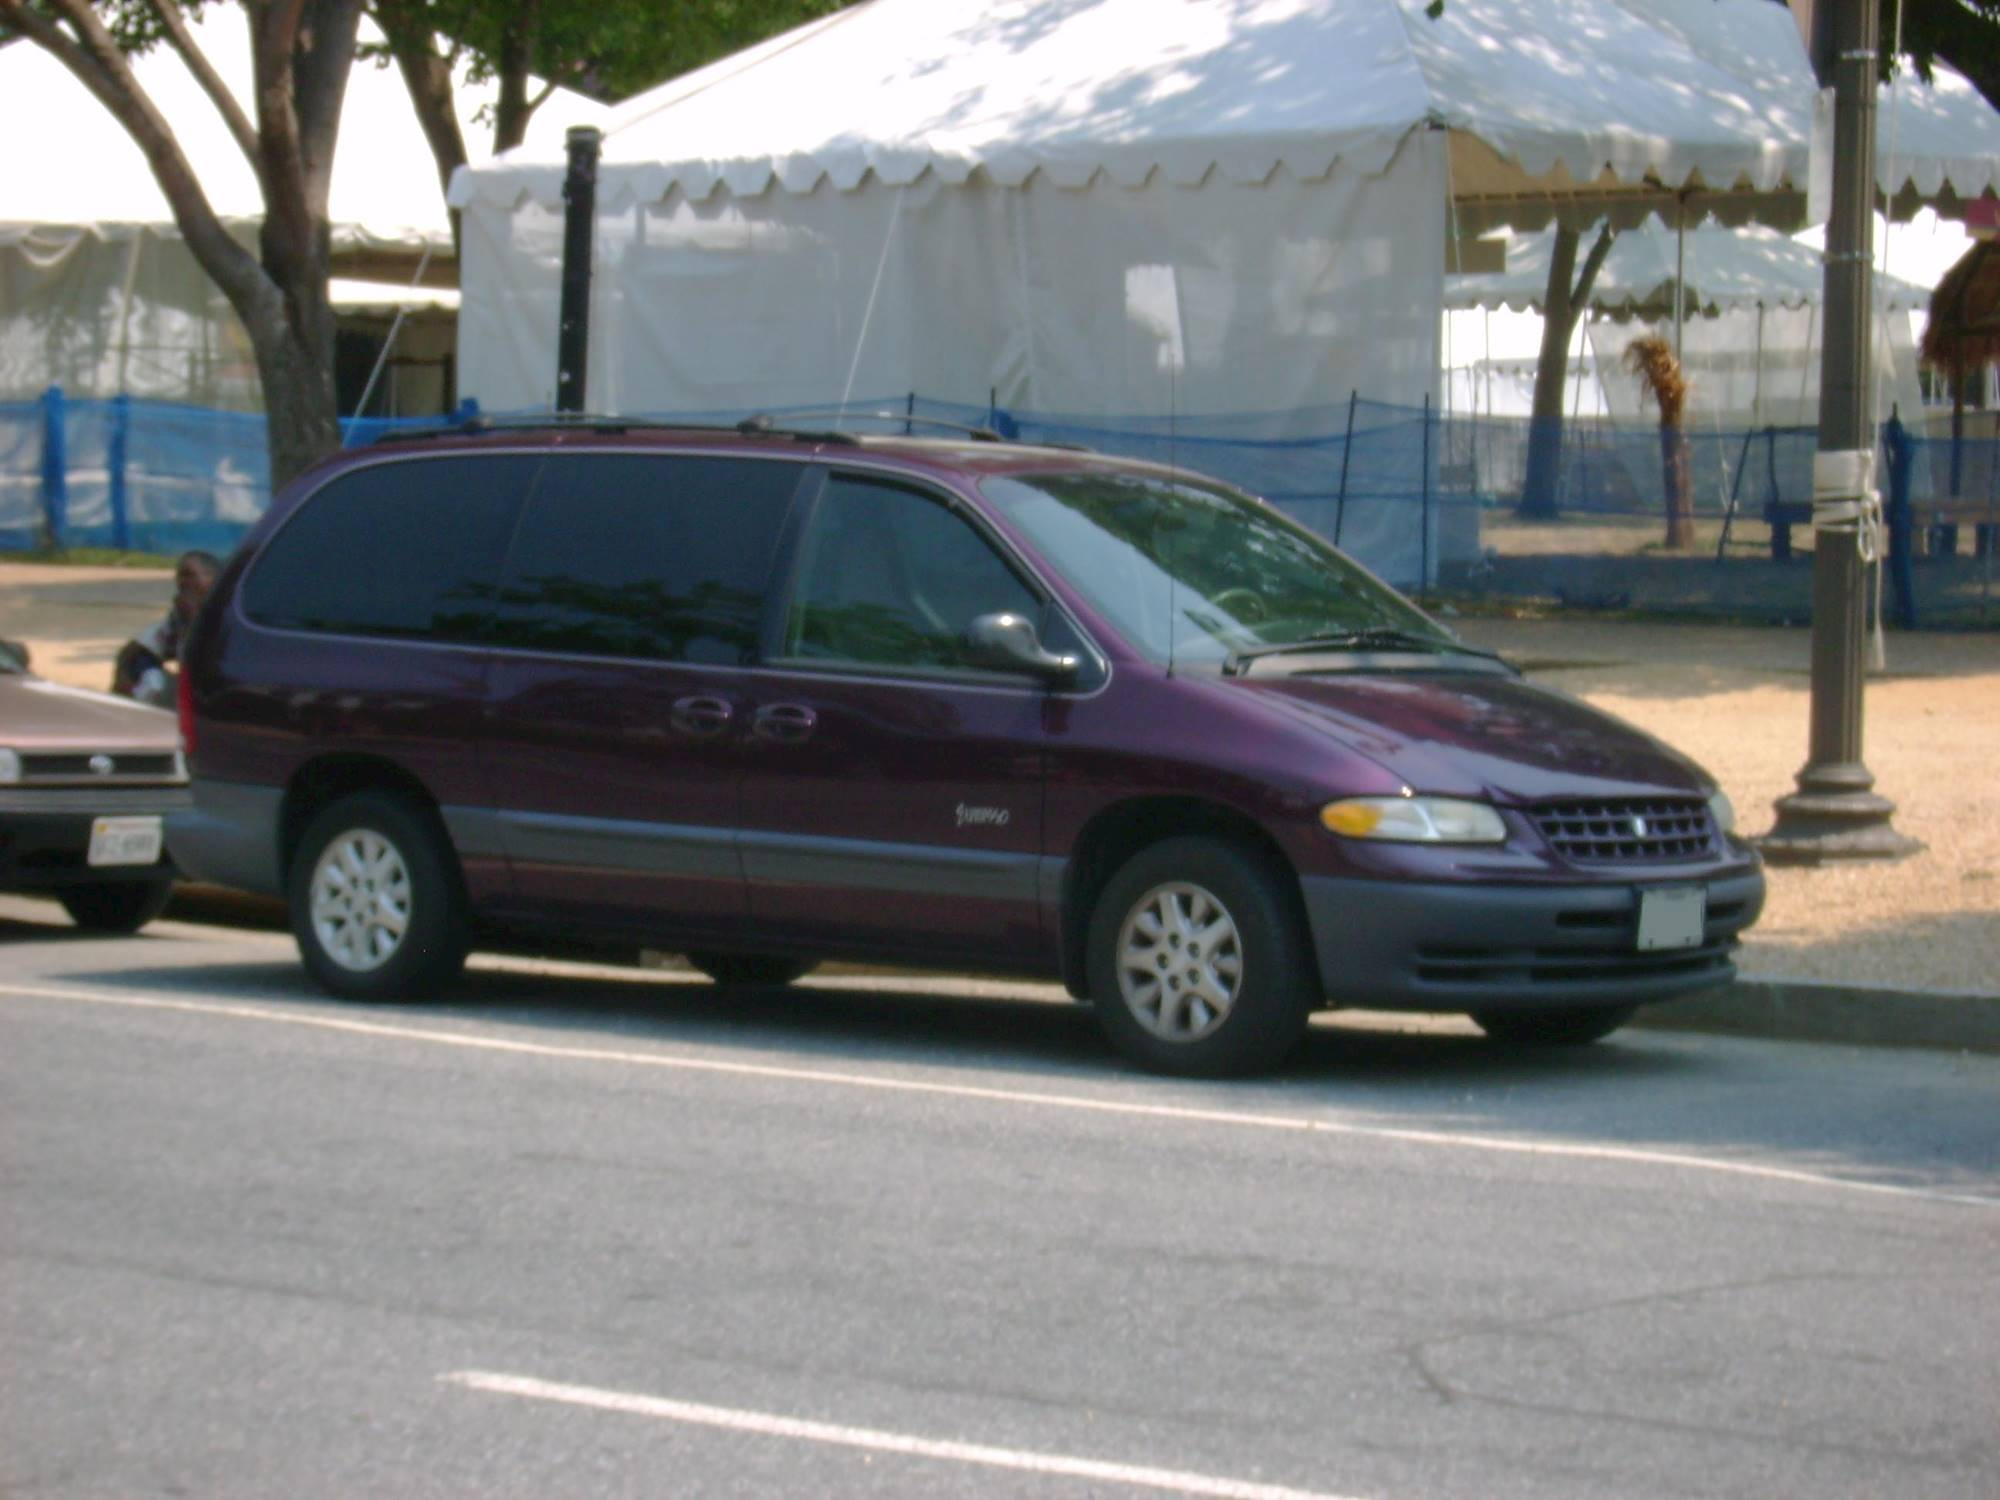 1998 plymouth grand voyager expresso passenger minivan 3 0l v6 auto 1998 plymouth grand voyager expresso